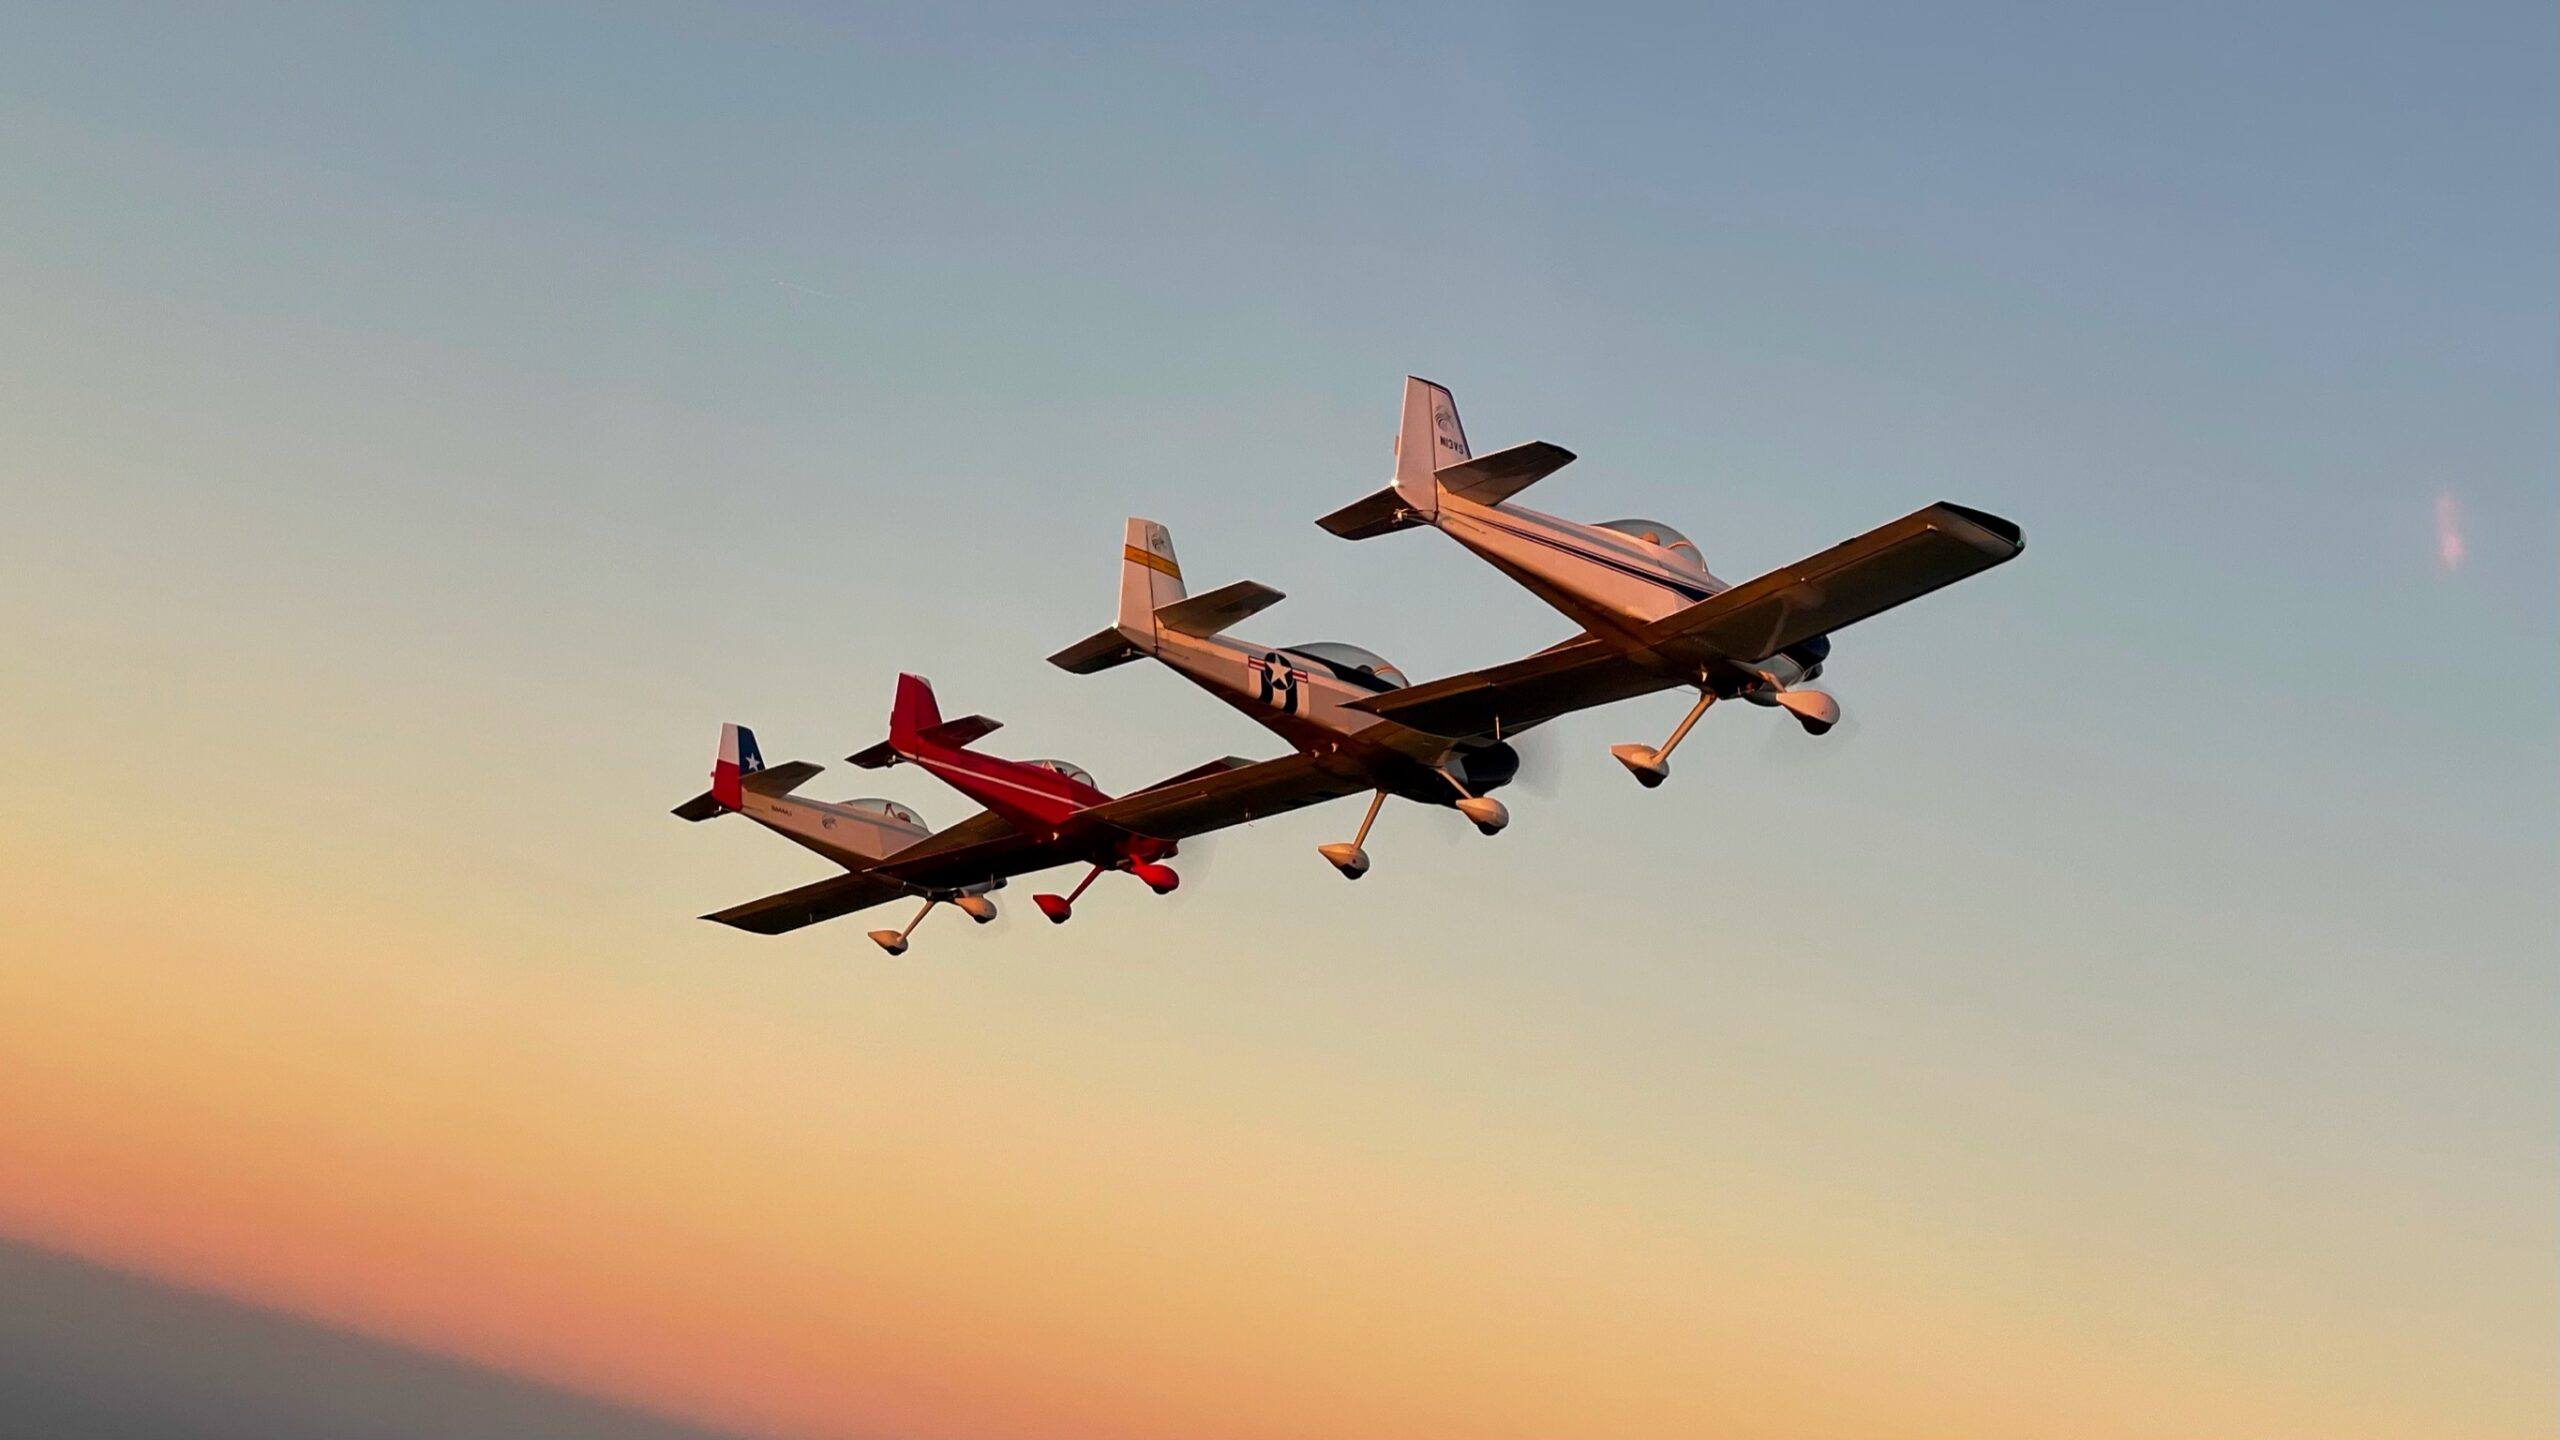 planes in formation at sunset